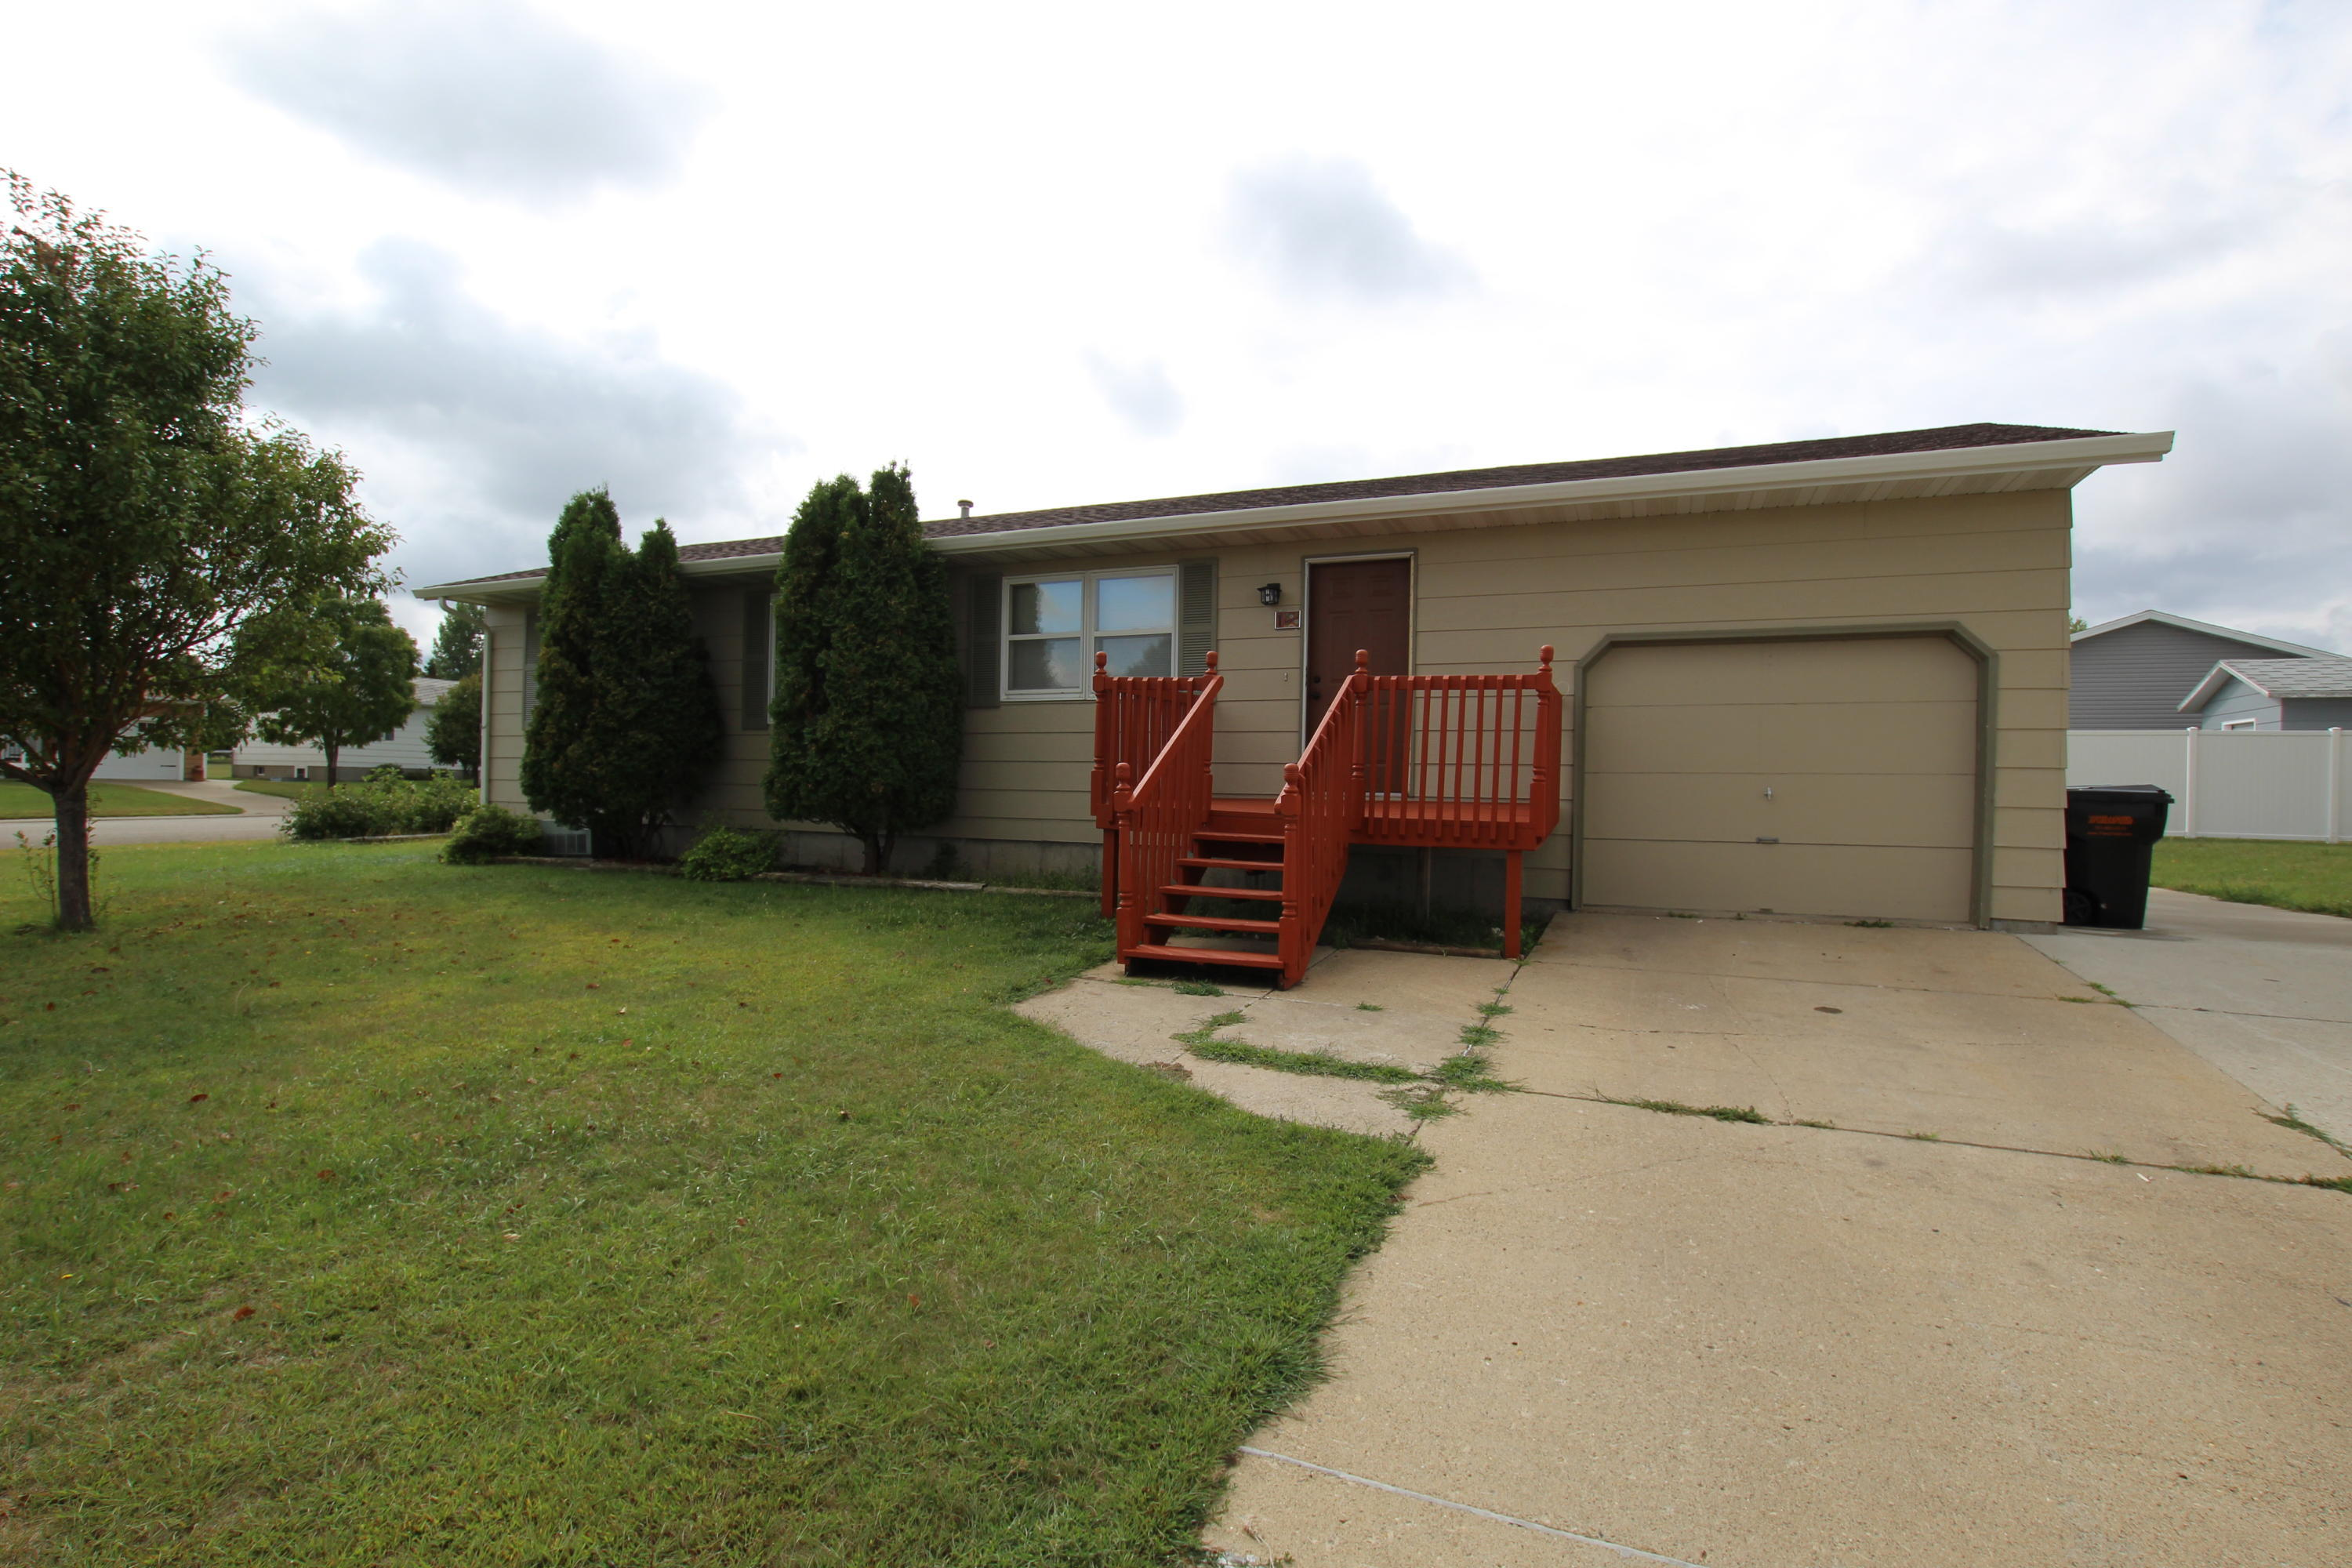 1 Eckleson Road Lincoln Nd Mls 400041 Brenda Foster 701 789